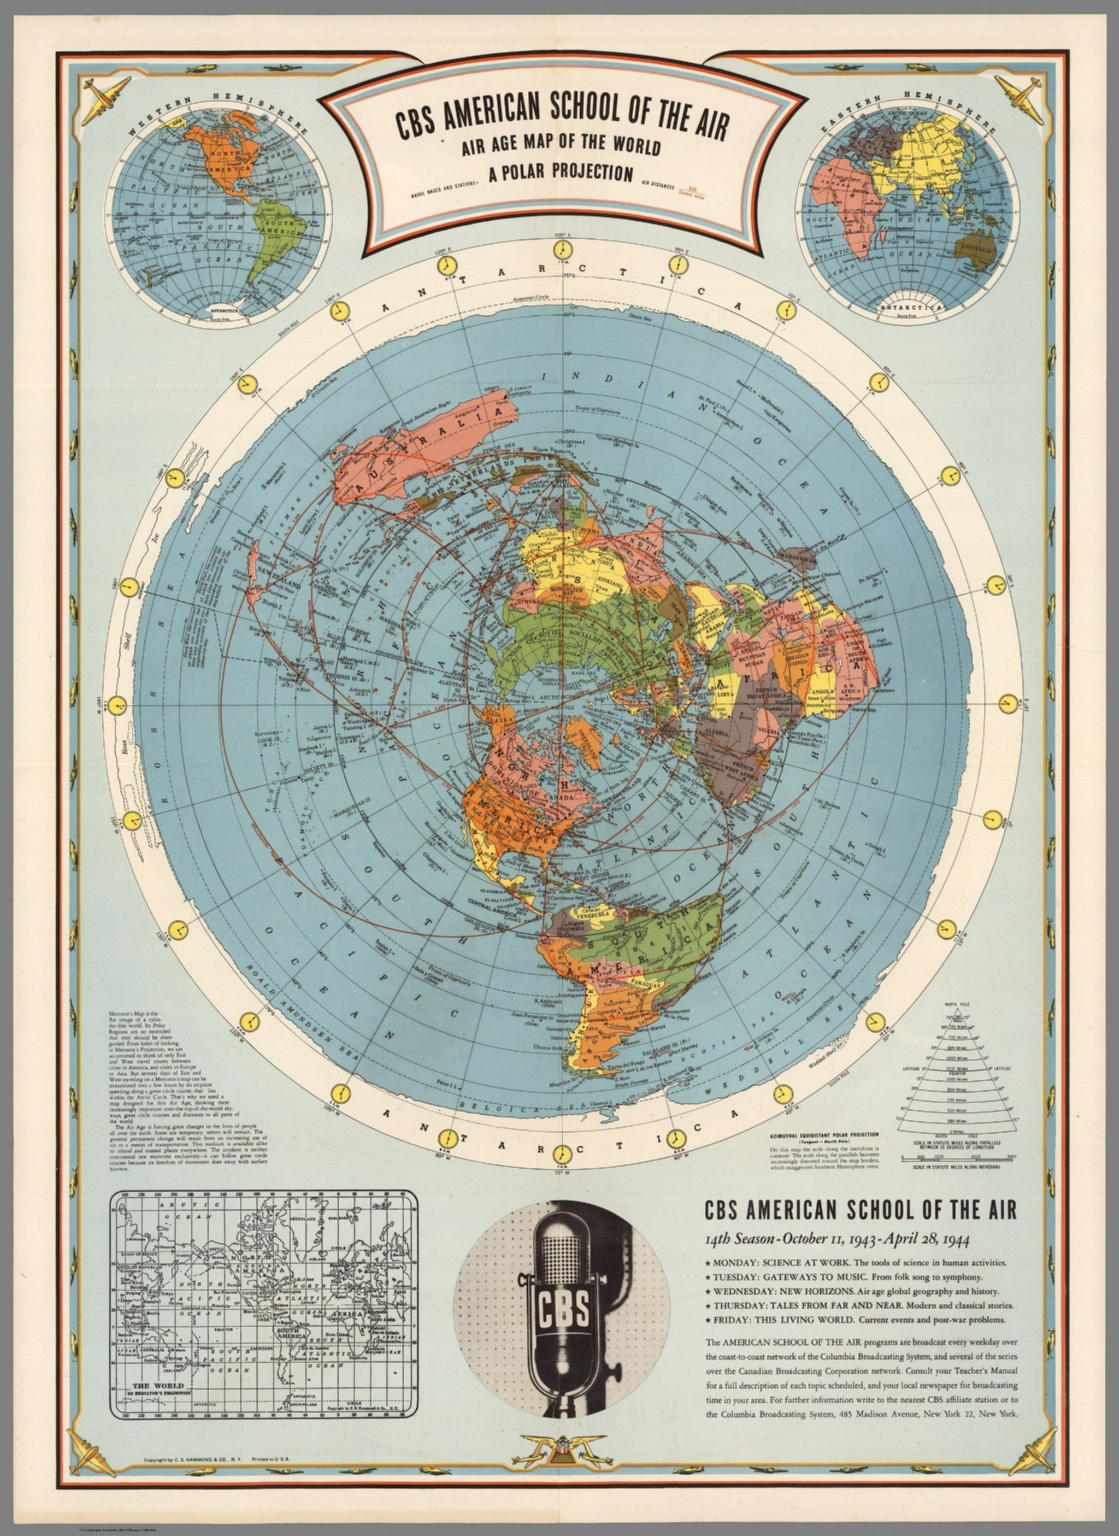 CBS American School of the Air, Air Age Map of the World, A Polar